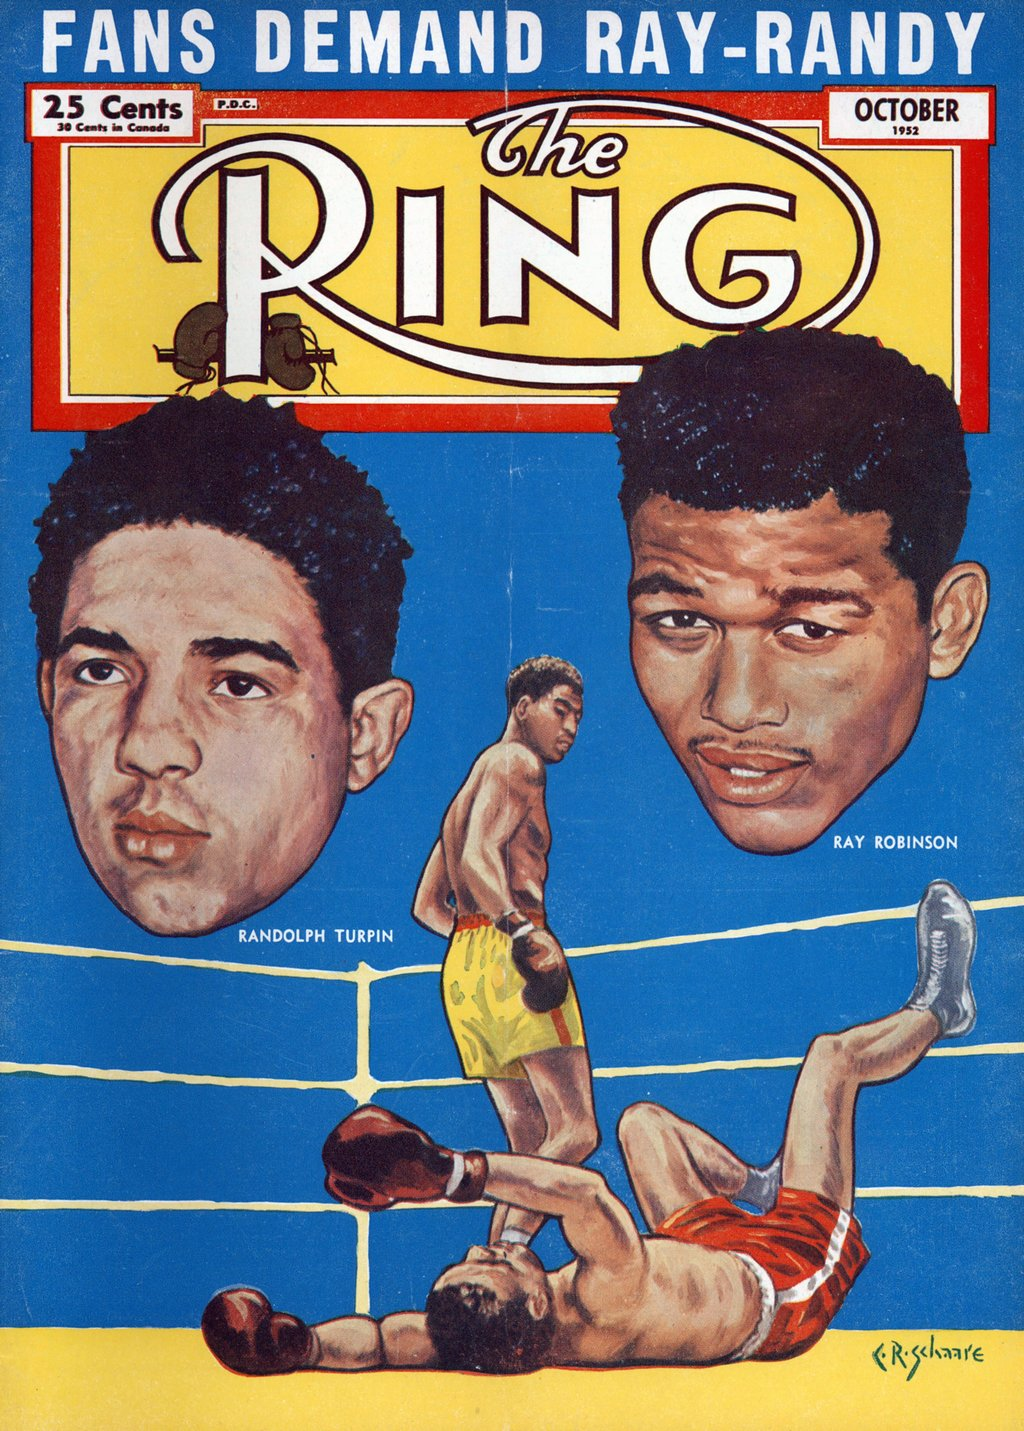 rsz gettyimages 159922781 - Sugar Ray Robinson versus the Hall of Fame